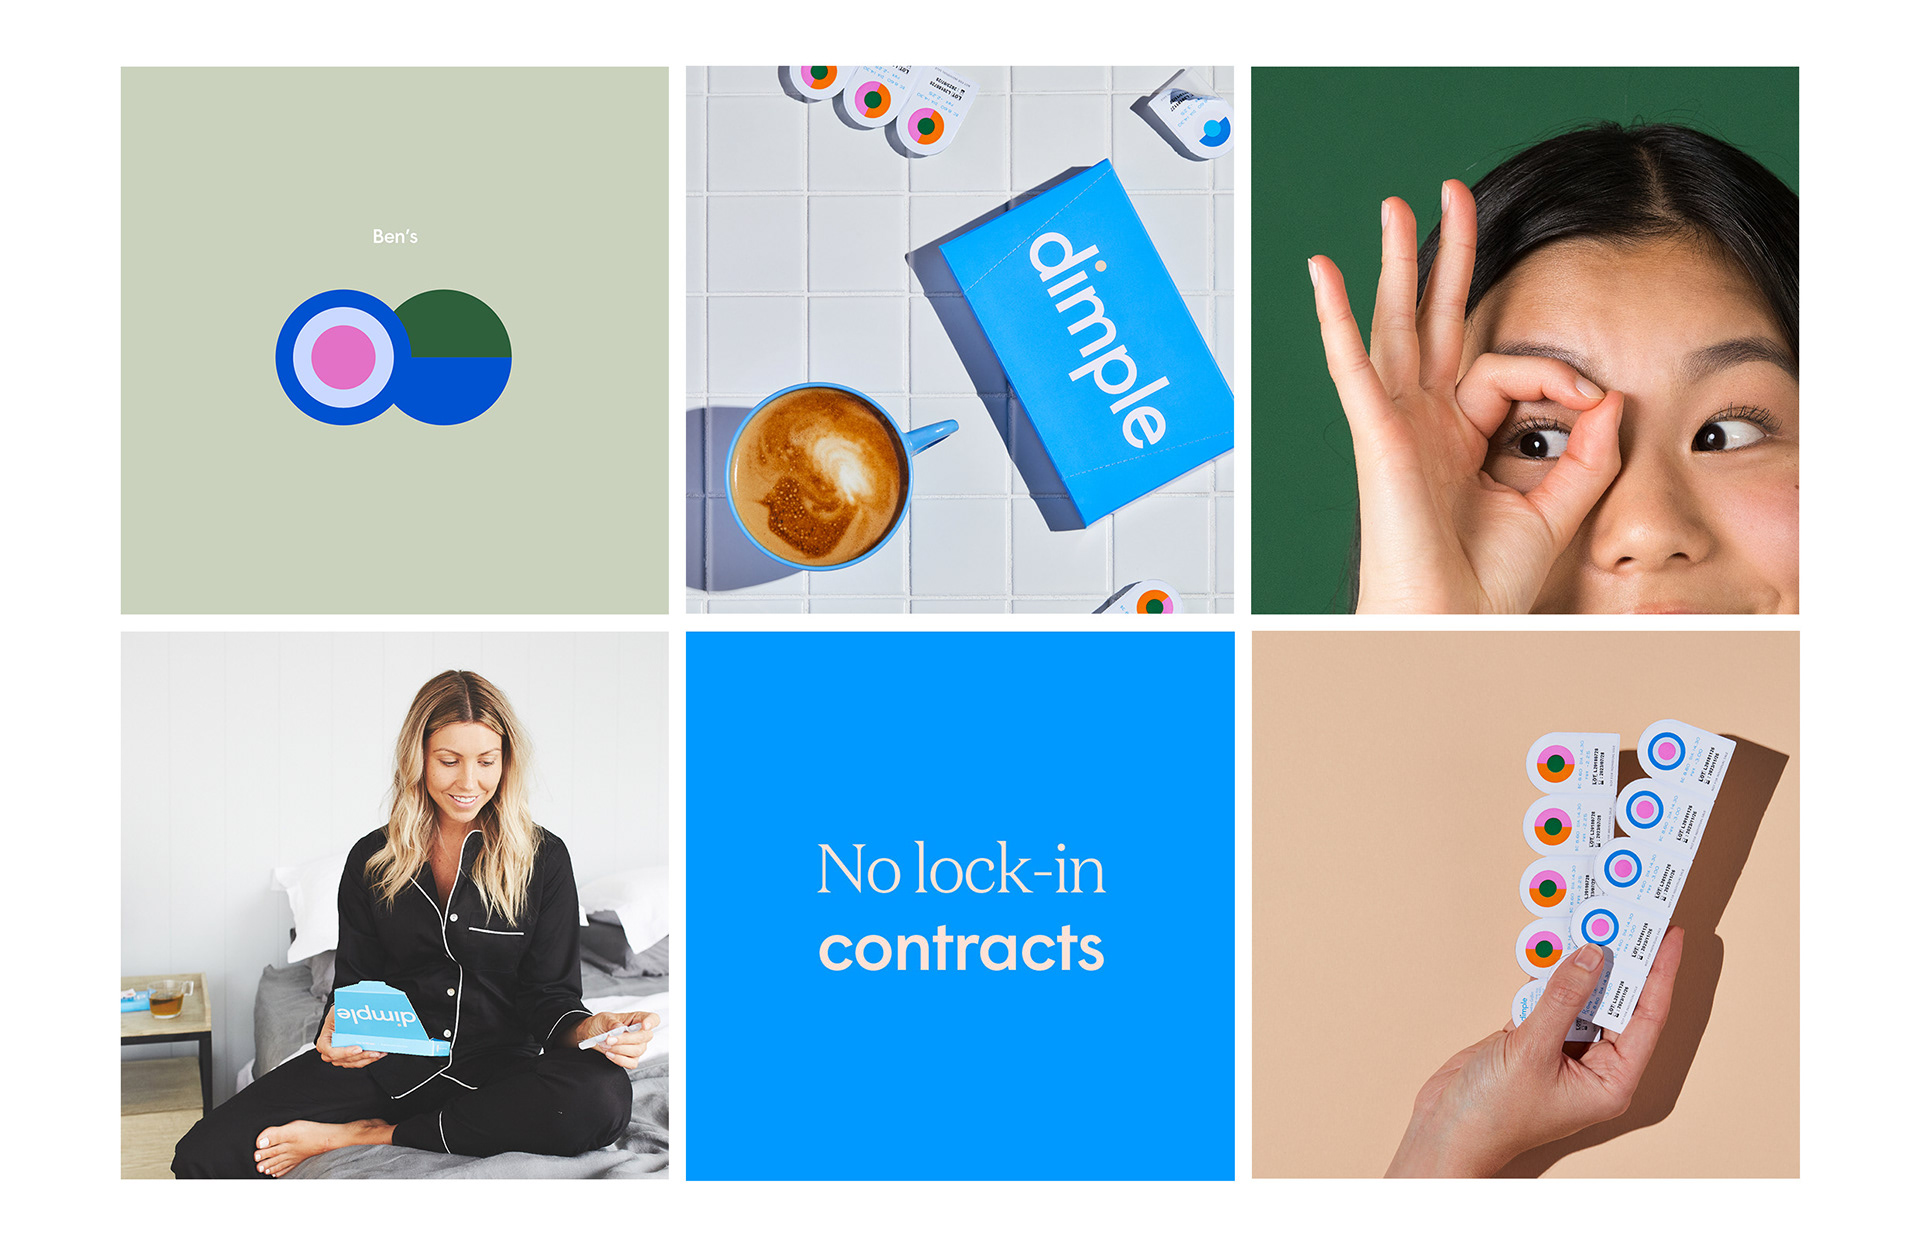 Dimple - A clear vision for change on Behance